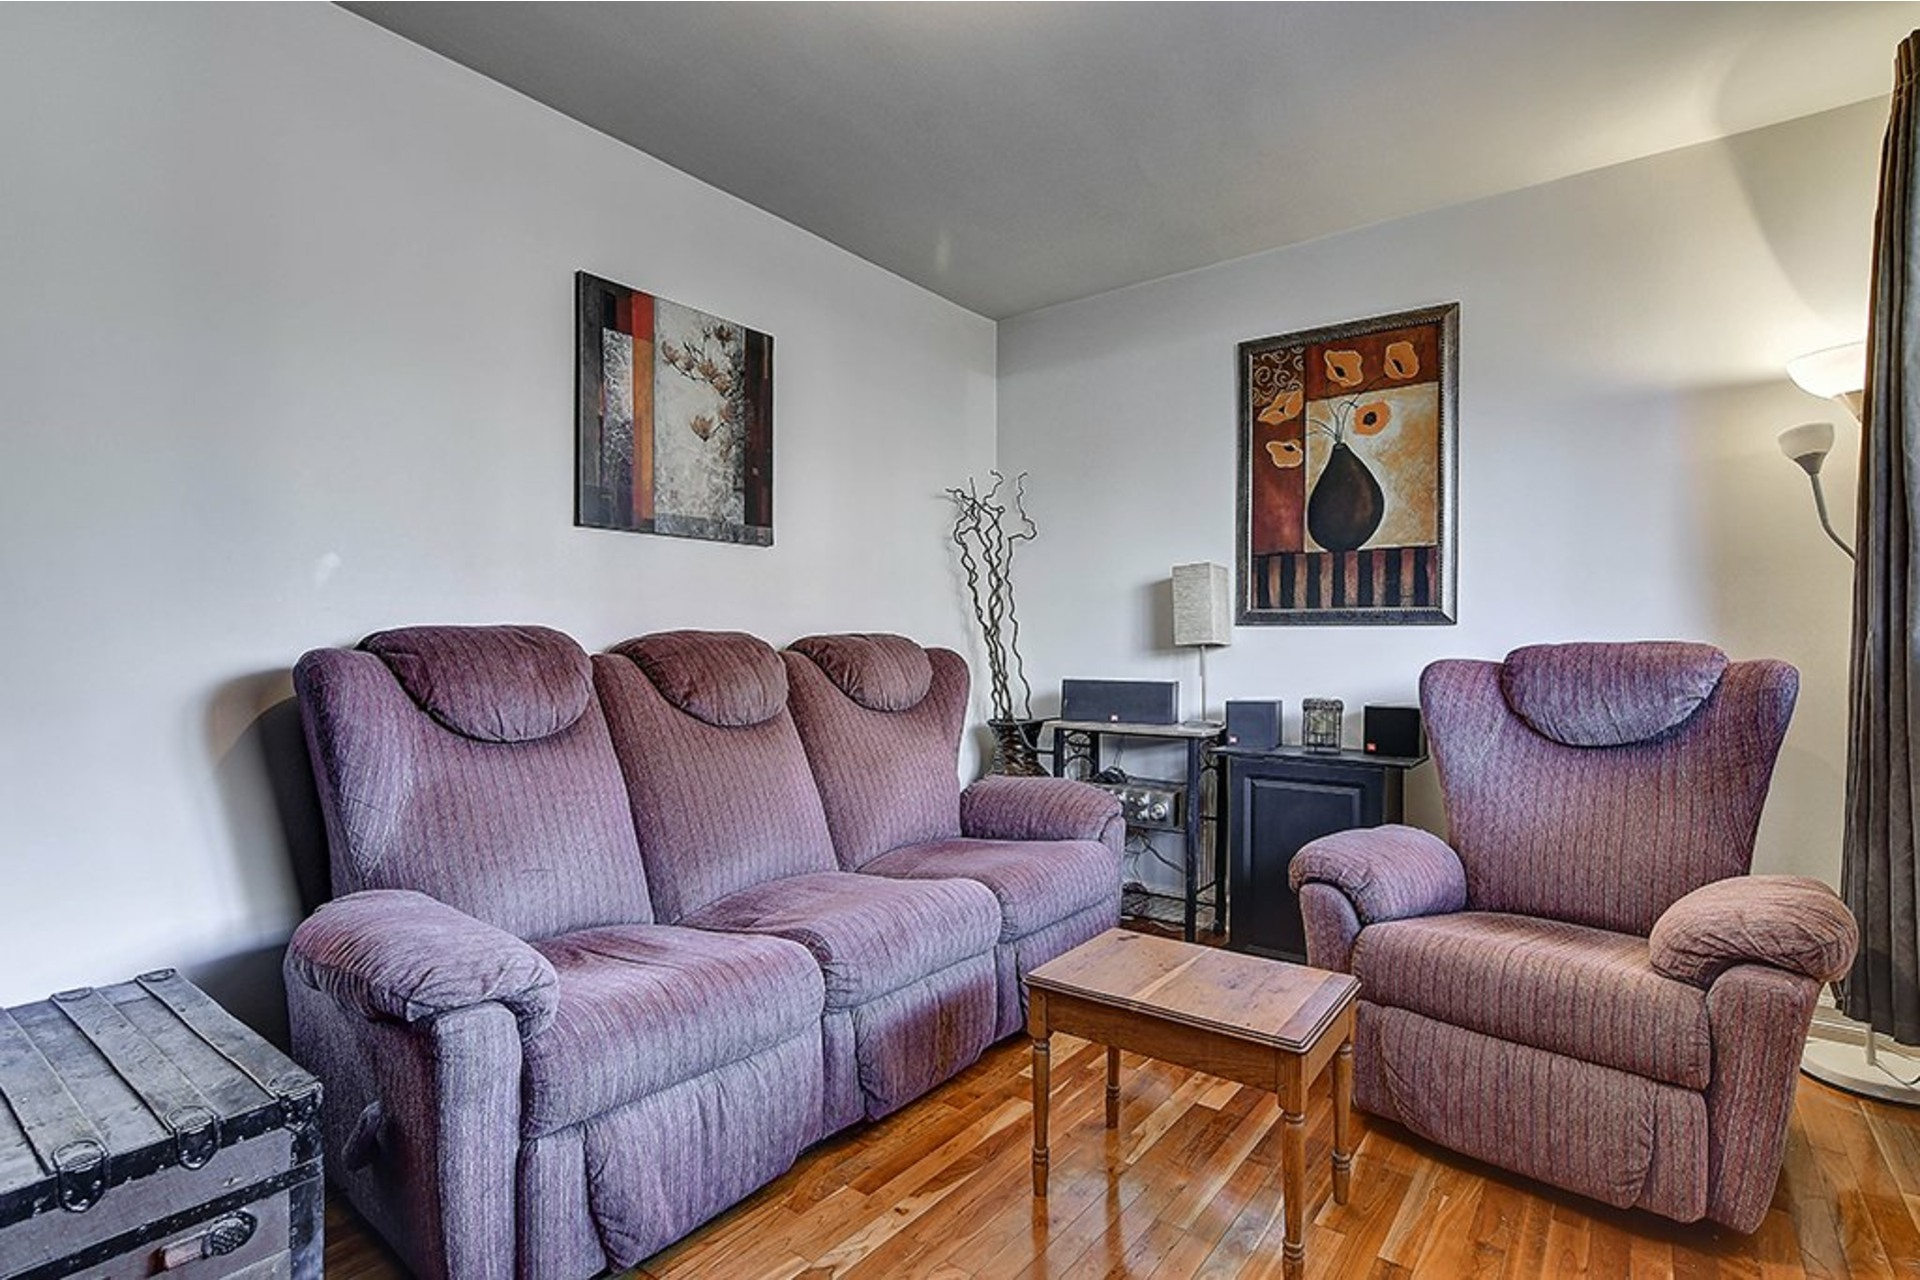 image 18 - Income property For sale Le Sud-Ouest Montréal  - 4 rooms